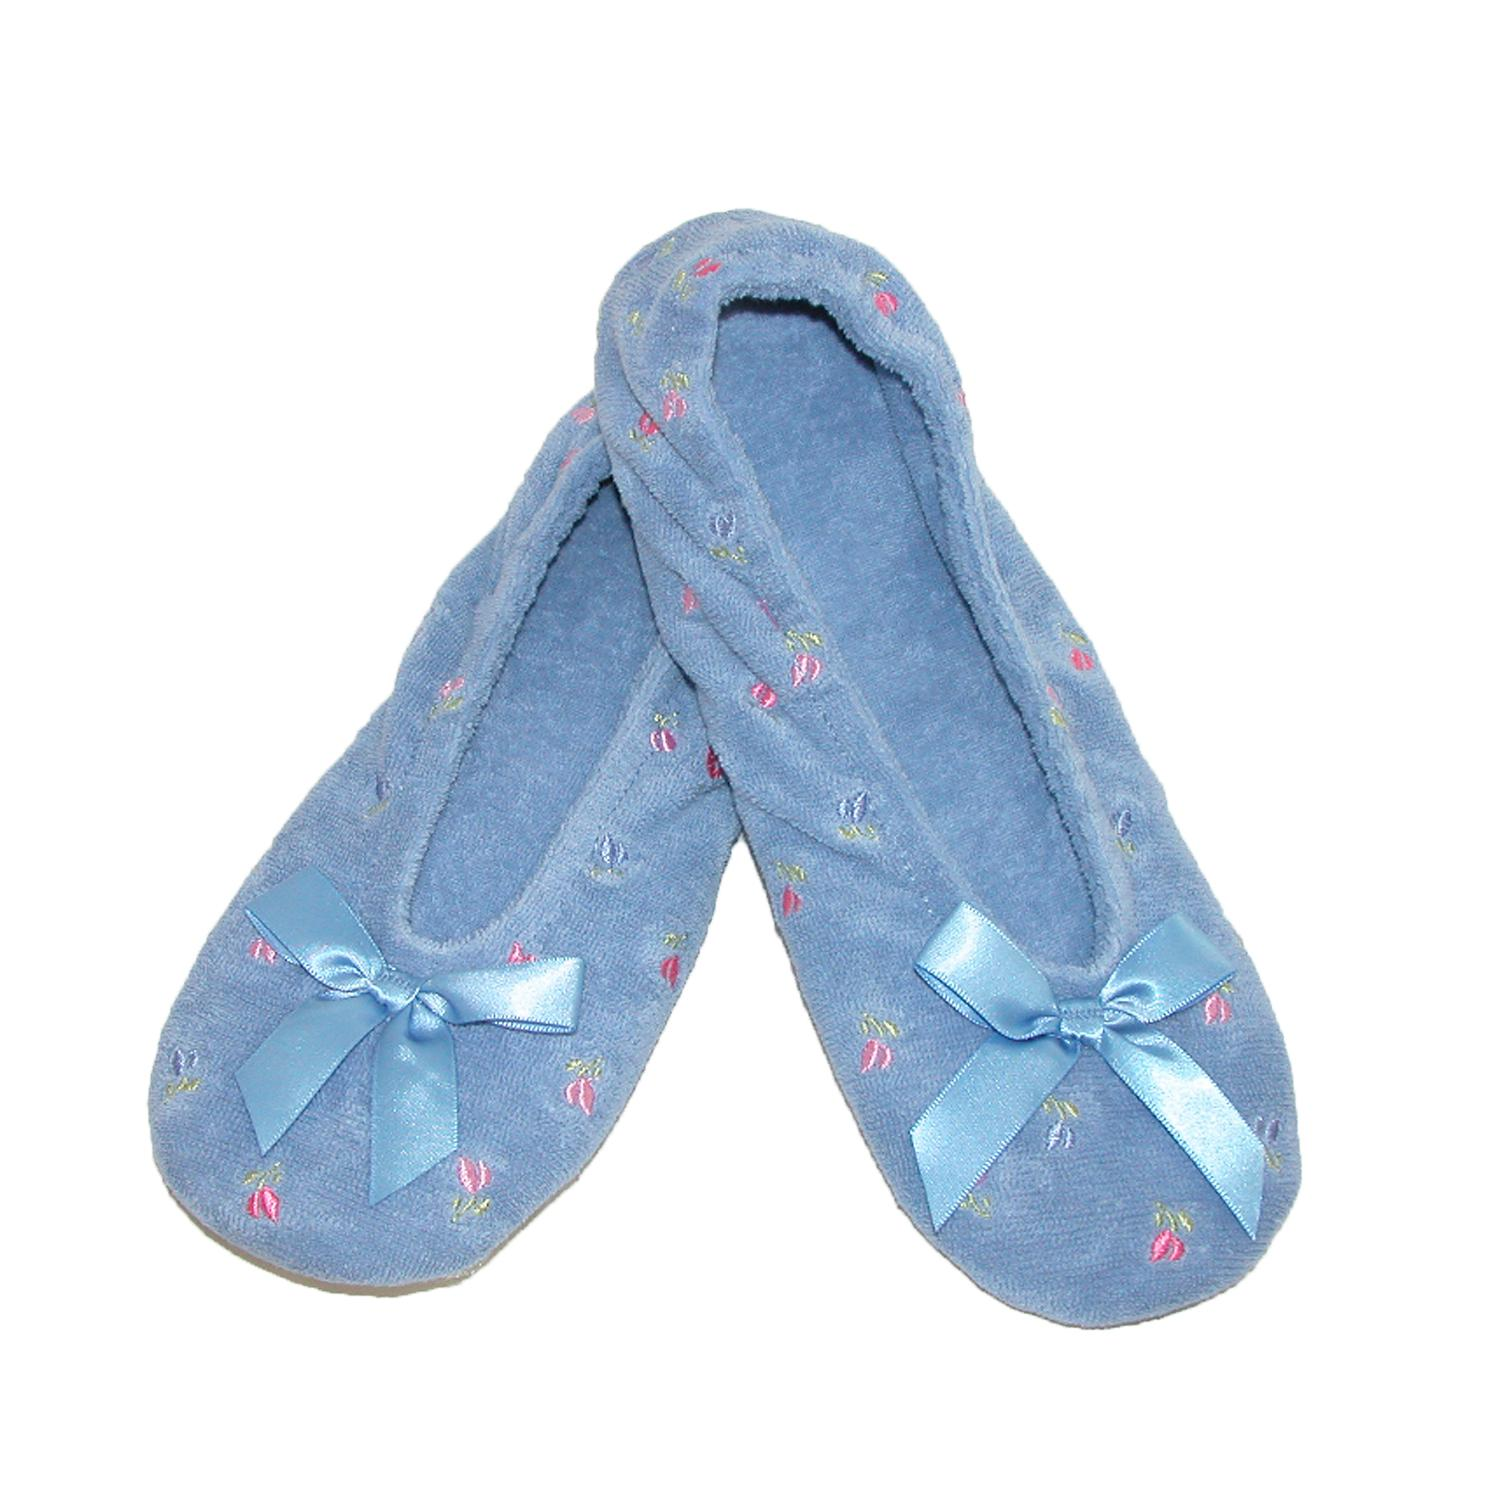 New-Isotoner-Women-039-s-Embroidered-Terry-Ballerina-Slippers thumbnail 7